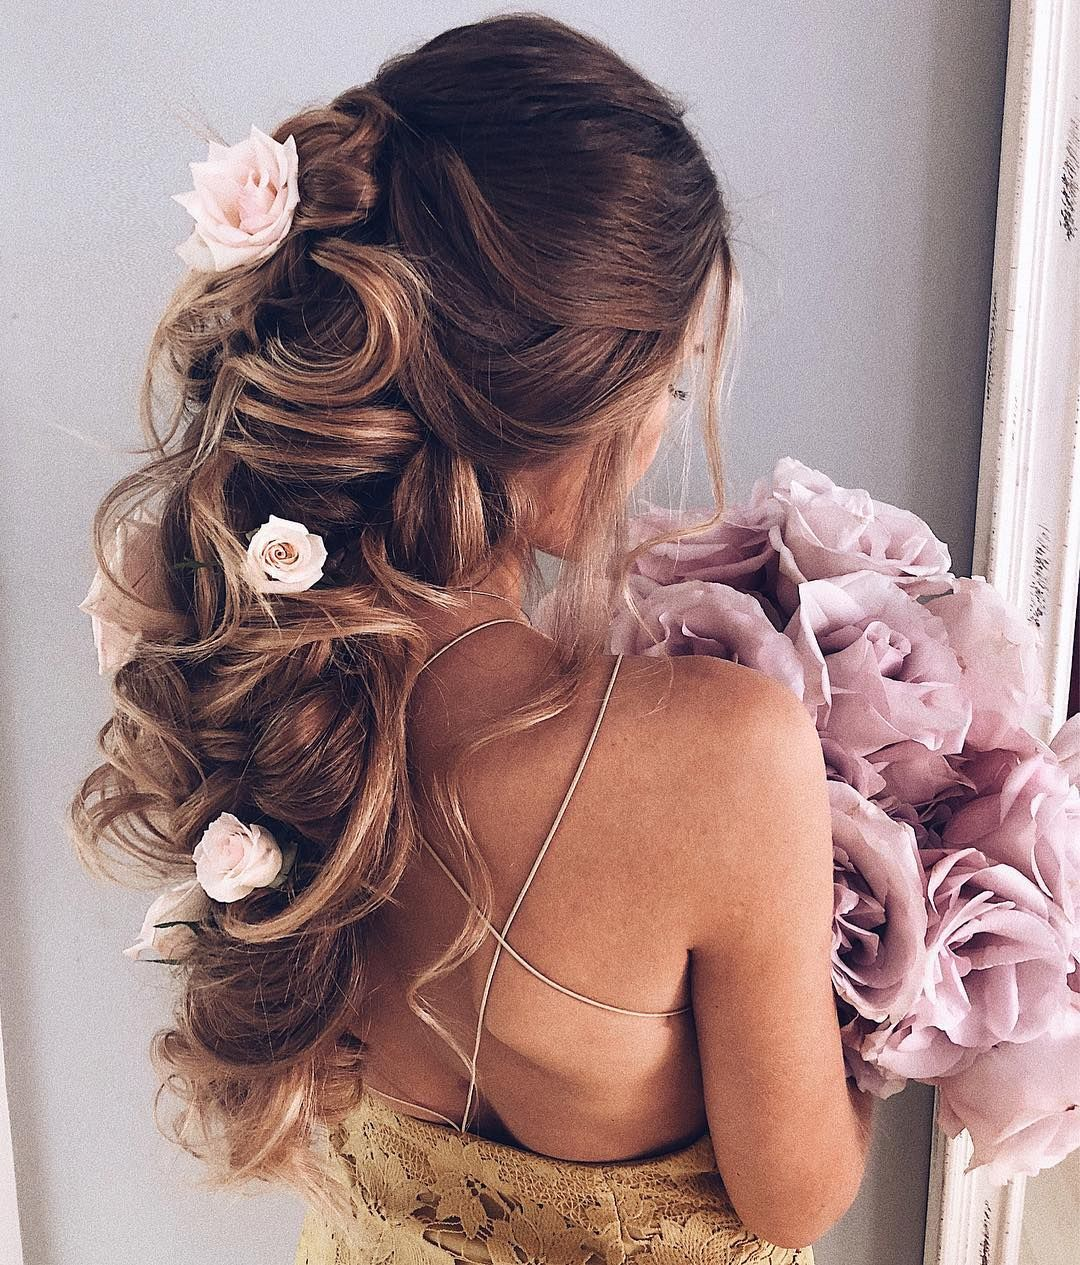 10 Special Event Hairstyles Meant For Long Curly Hair Curlyhairstyles Curlyhairstyles2019 Curlyhairty Hair Styles Wedding Hair Inspiration Hair Inspiration